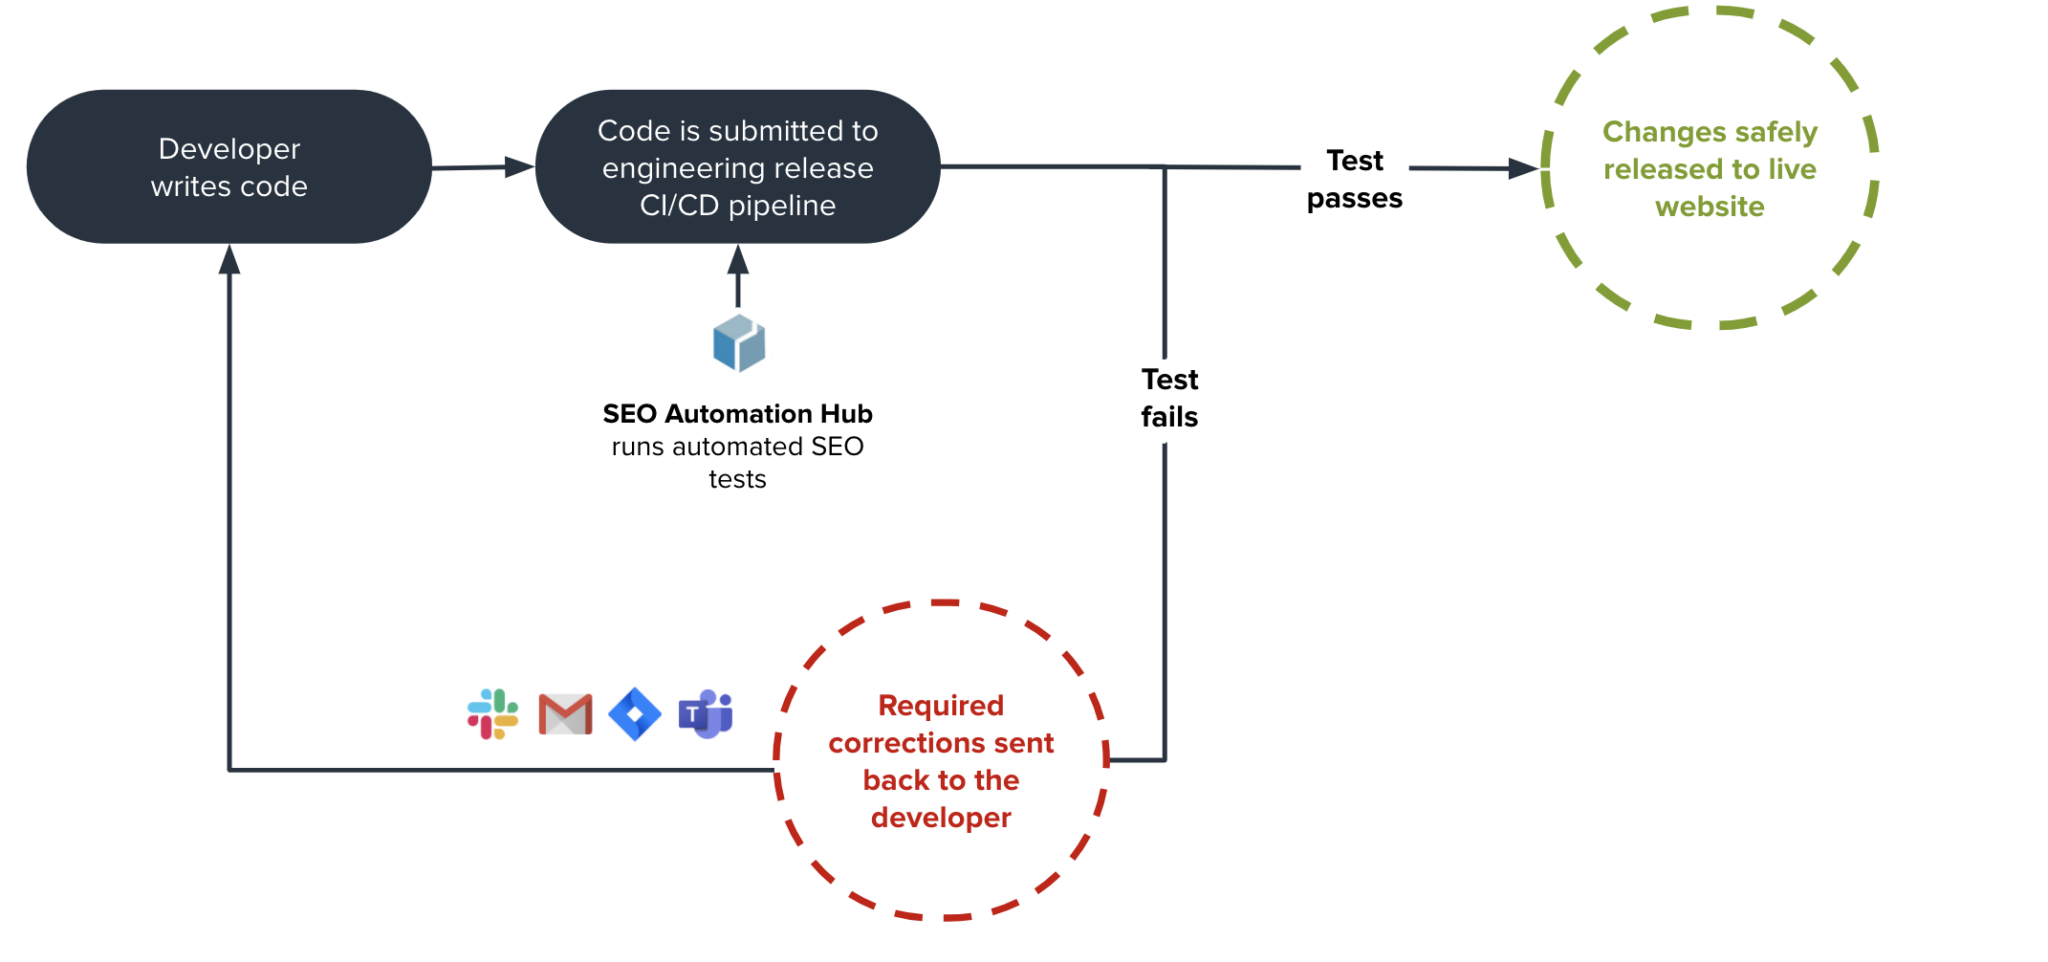 slide showing how SEO testing is more efficient using DeepCrawl's SEO automation Hub